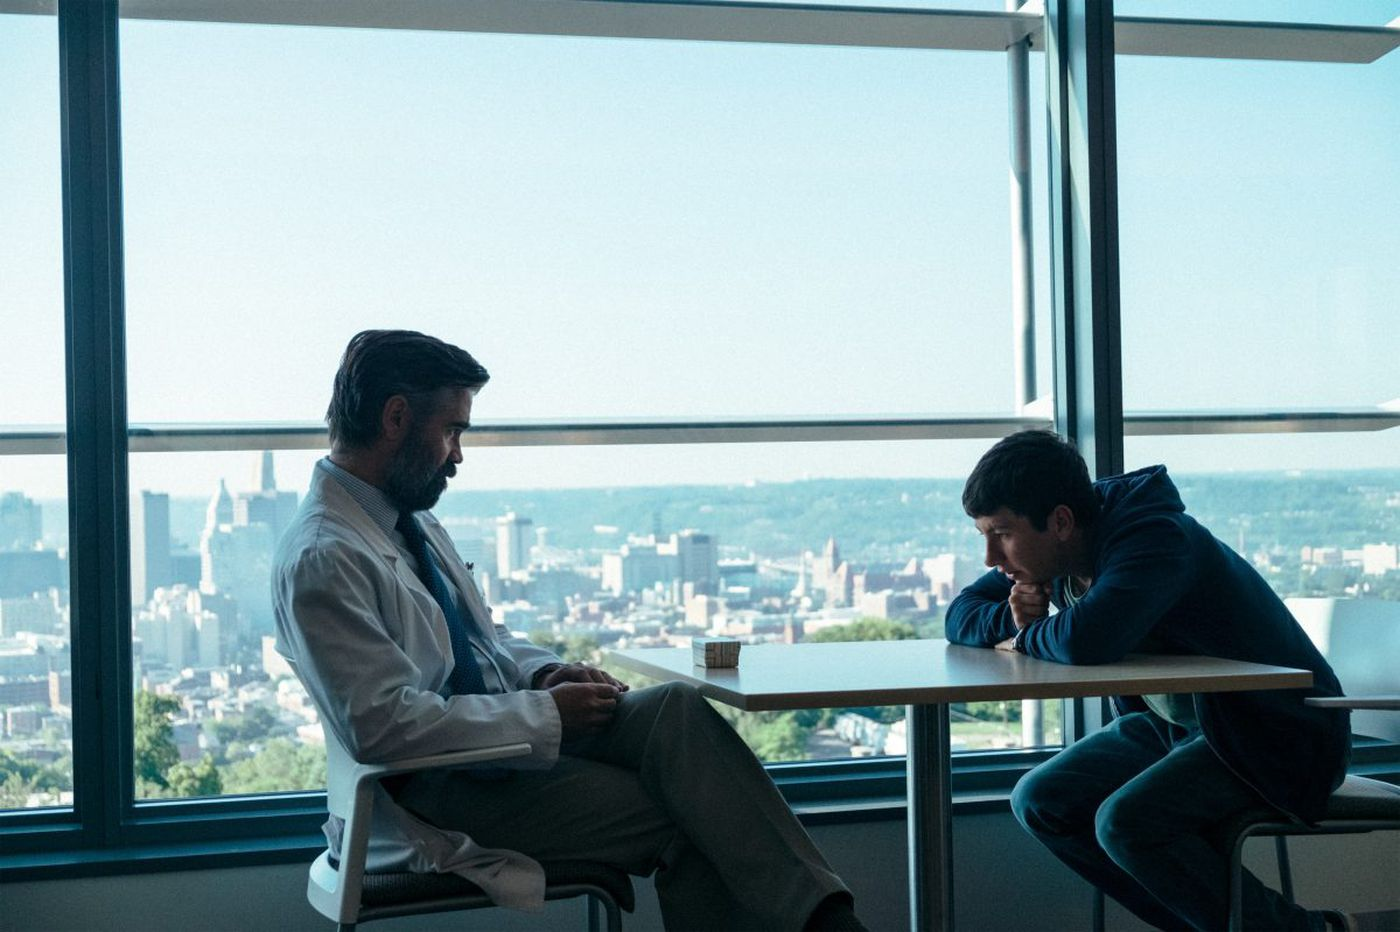 'The Killing of a Sacred Deer' is out of ammo